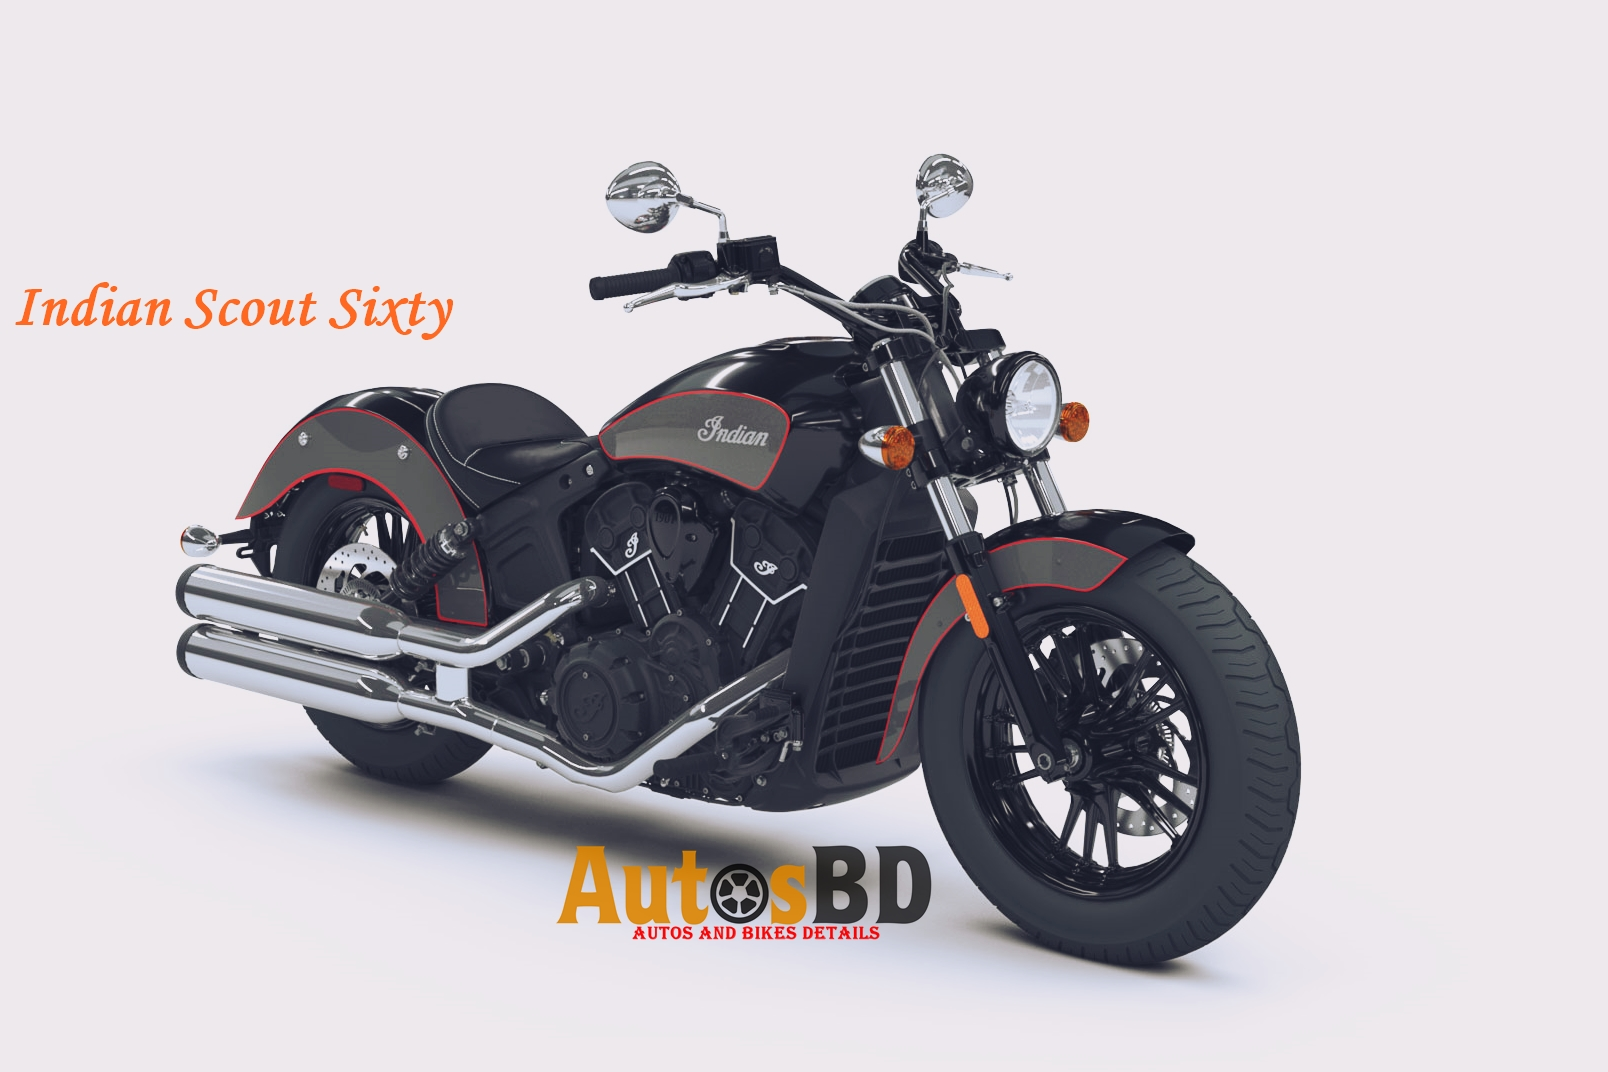 Indian Scout Sixty Motorcycle Price in India